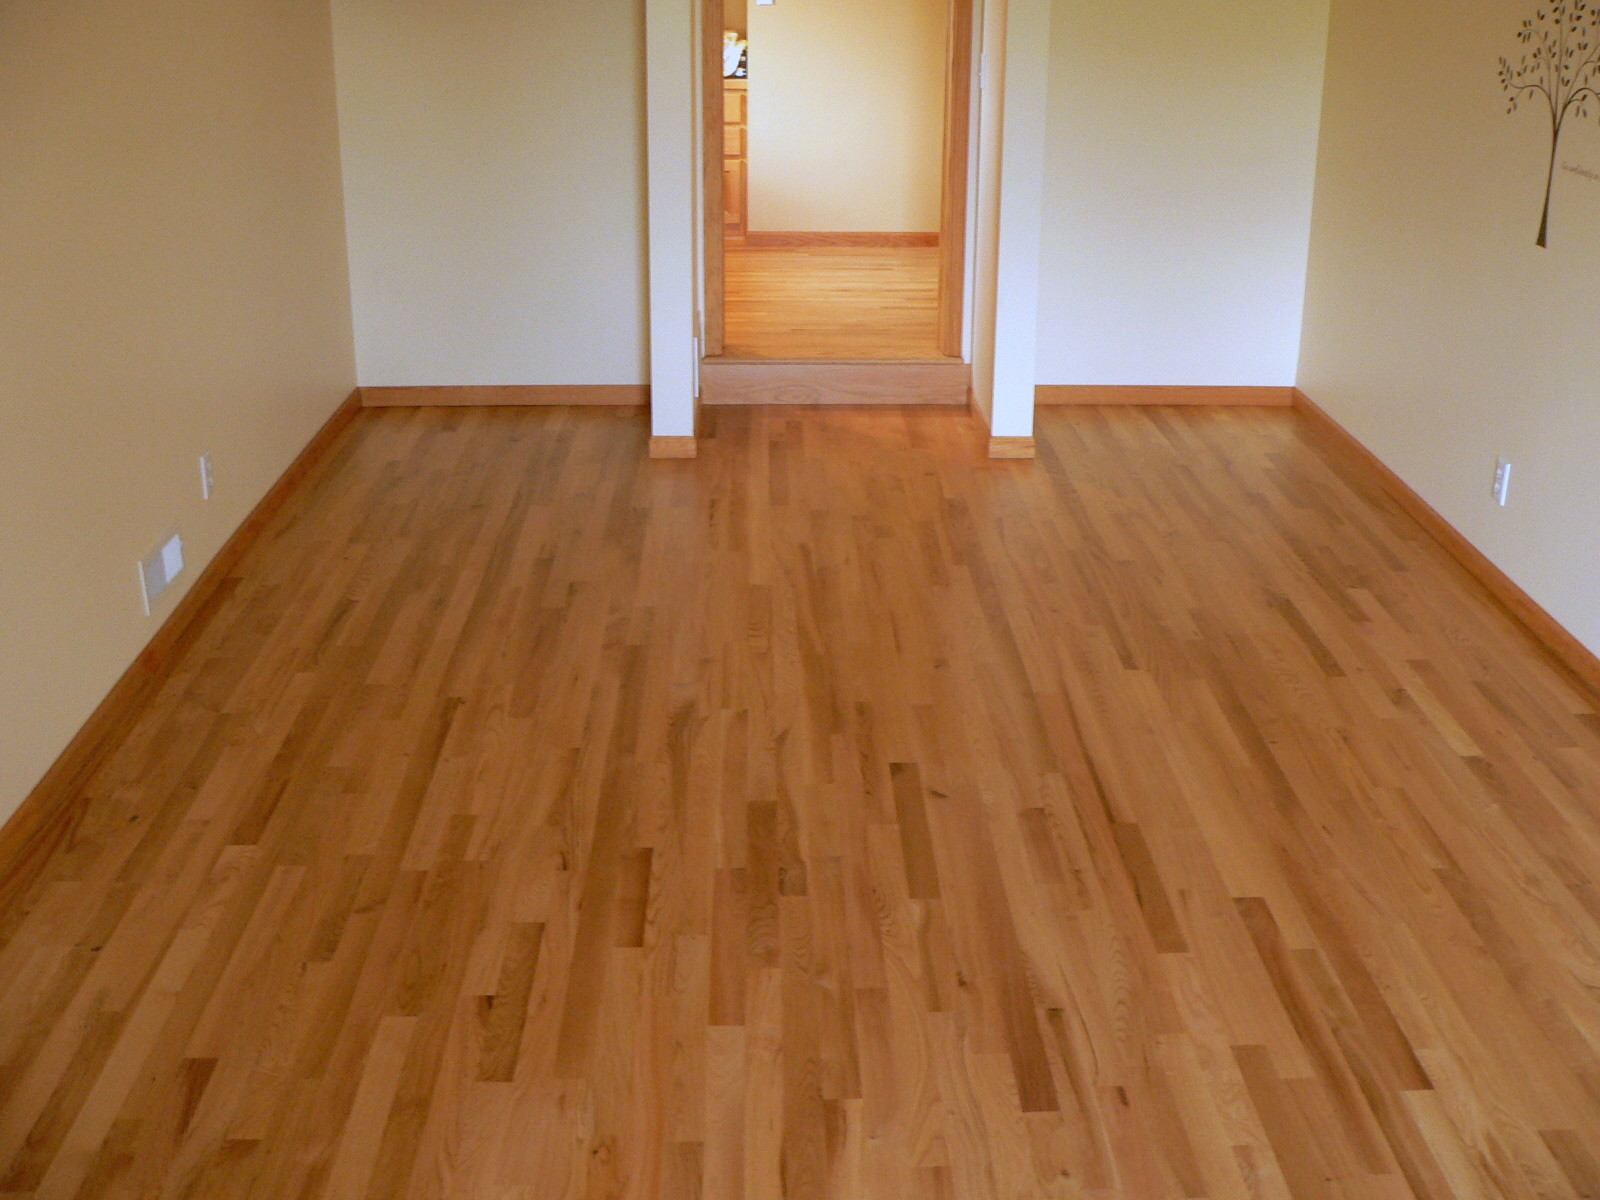 bamboo hardwood flooring reviews of winsome bamboo flooring colors kids room exterior fresh on bamboo with regard to winsome bamboo flooring colors kids room exterior fresh on bamboo flooring colors decor